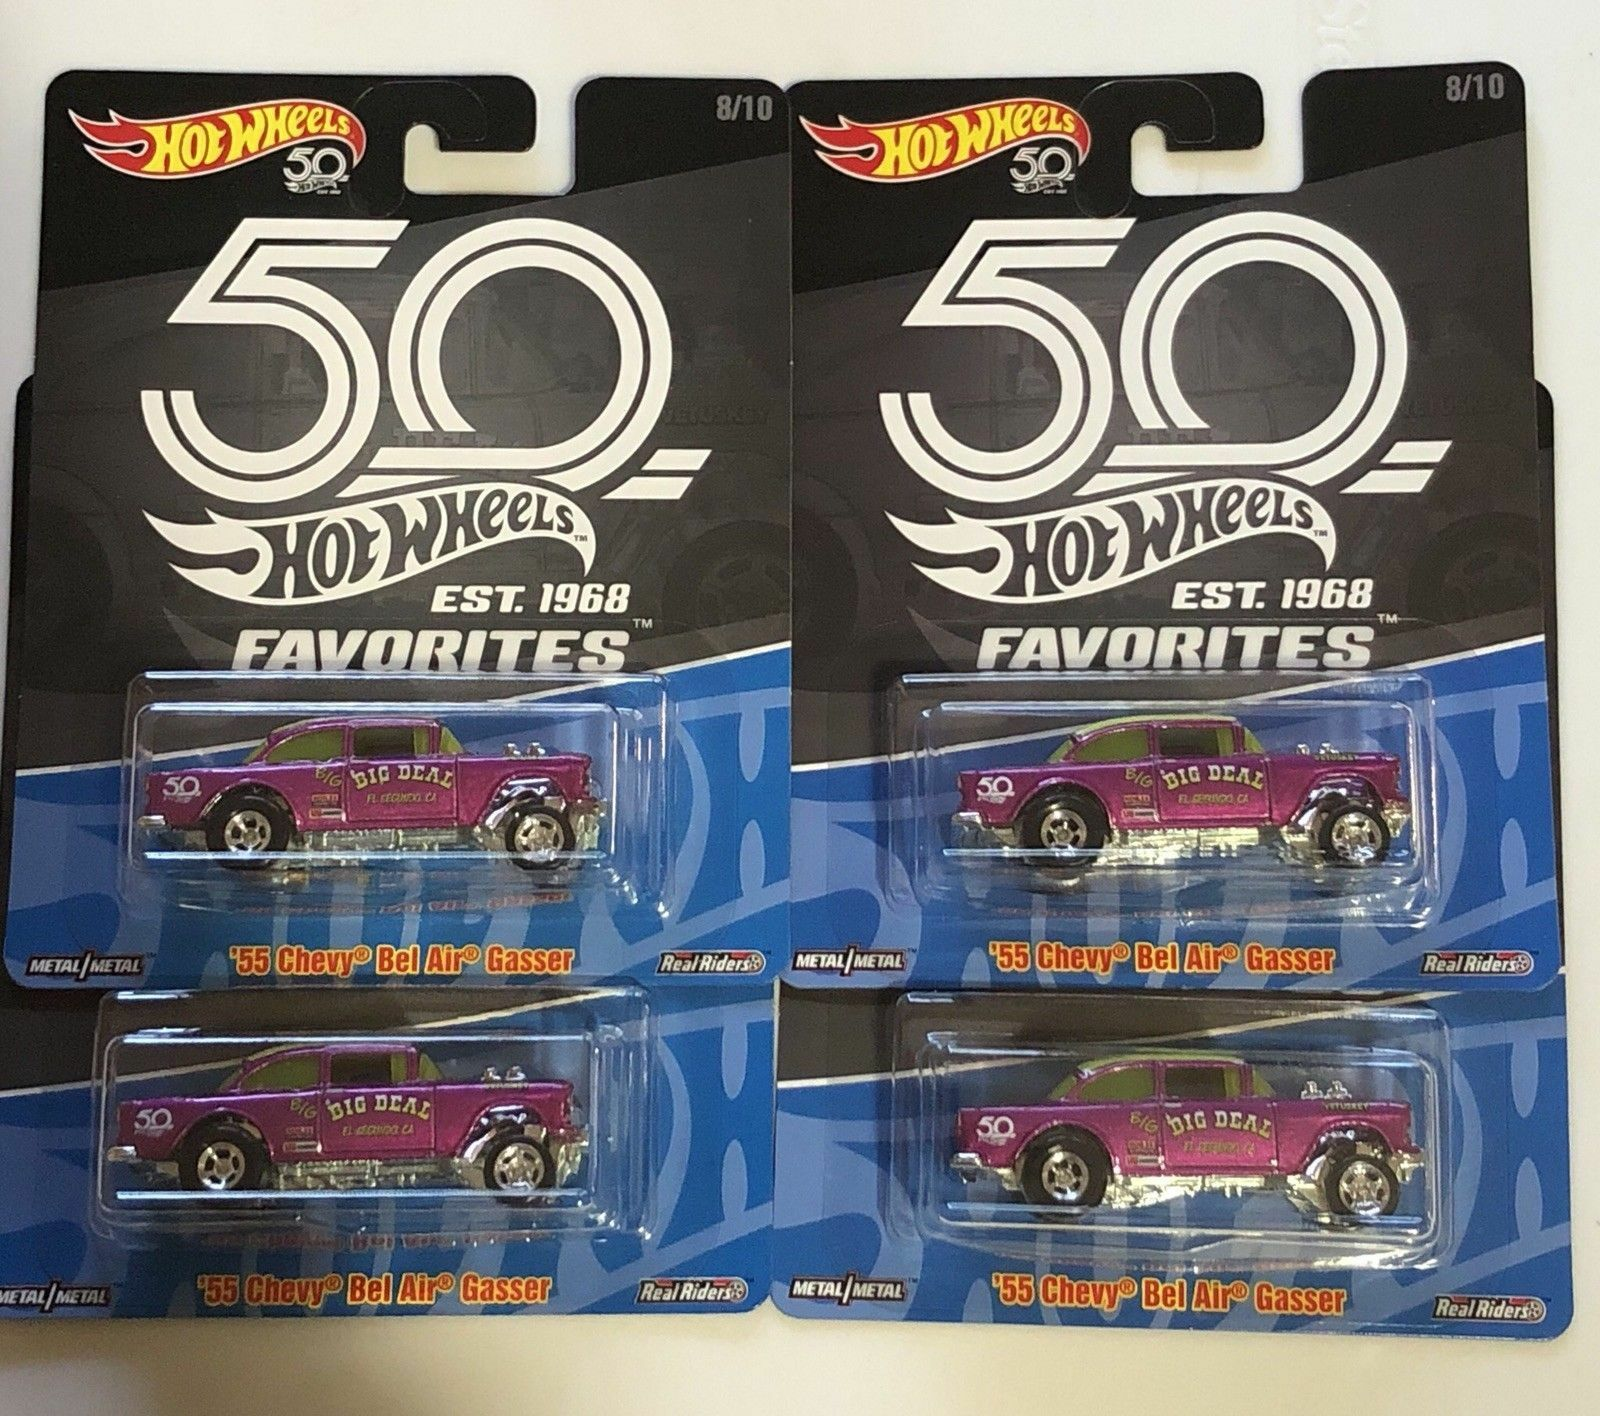 '55 CHEVY BEL AIR GASSER 50th Anniversaire Favoris Lot de 4 Hot Wheels HARD TO FIND Comme neuf